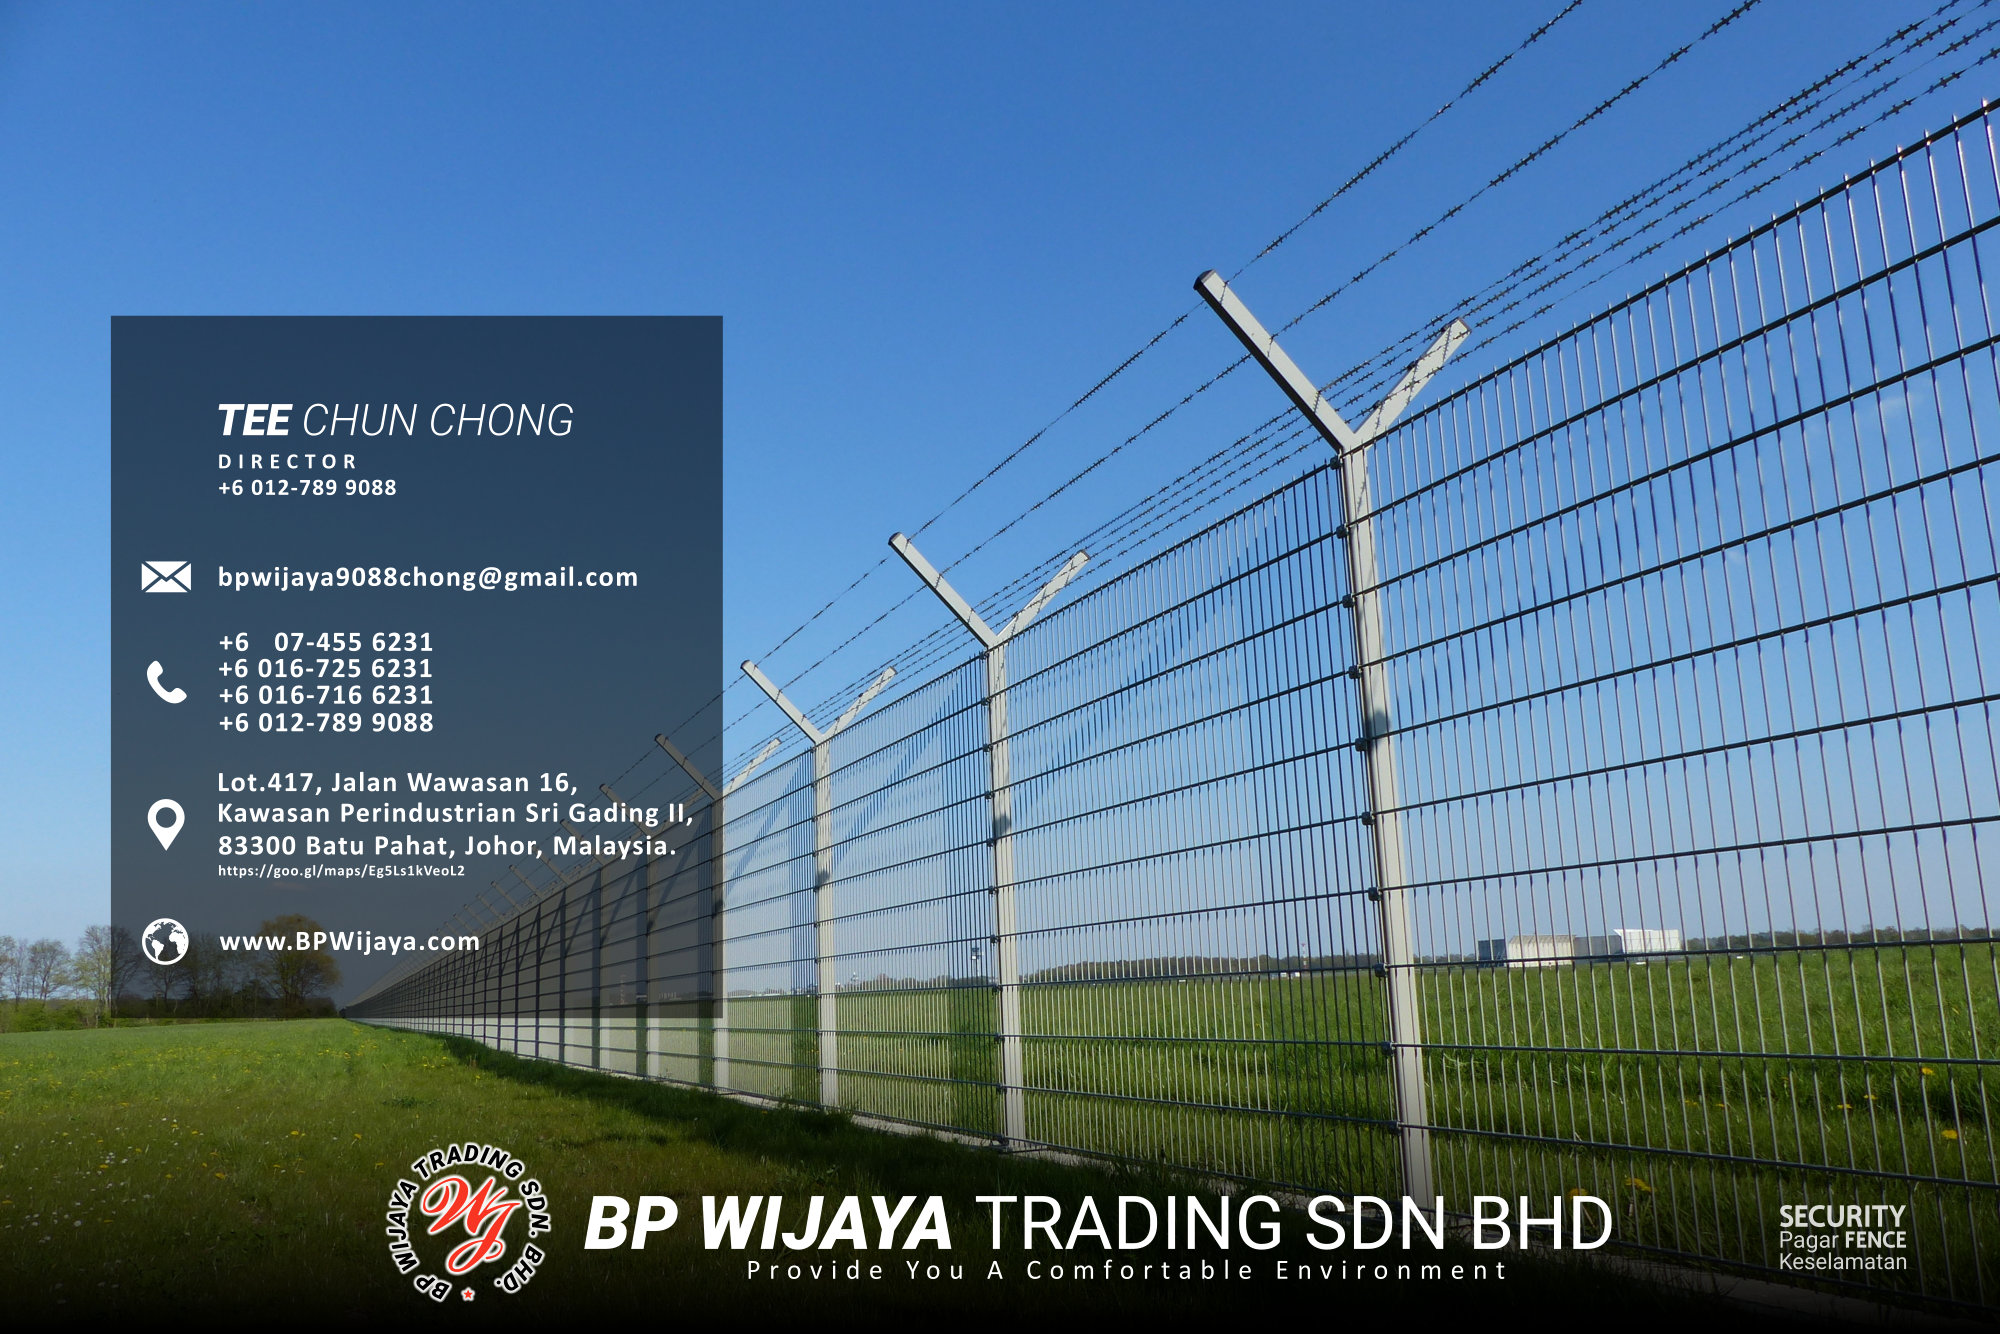 Kuala Lumpur Security Fence Supply we are manufacturer of security fence BP Wijaya Trading Sdn Bhd Safety Fence Building Materials for Housing Construction factory fence house beauty fence A03-010